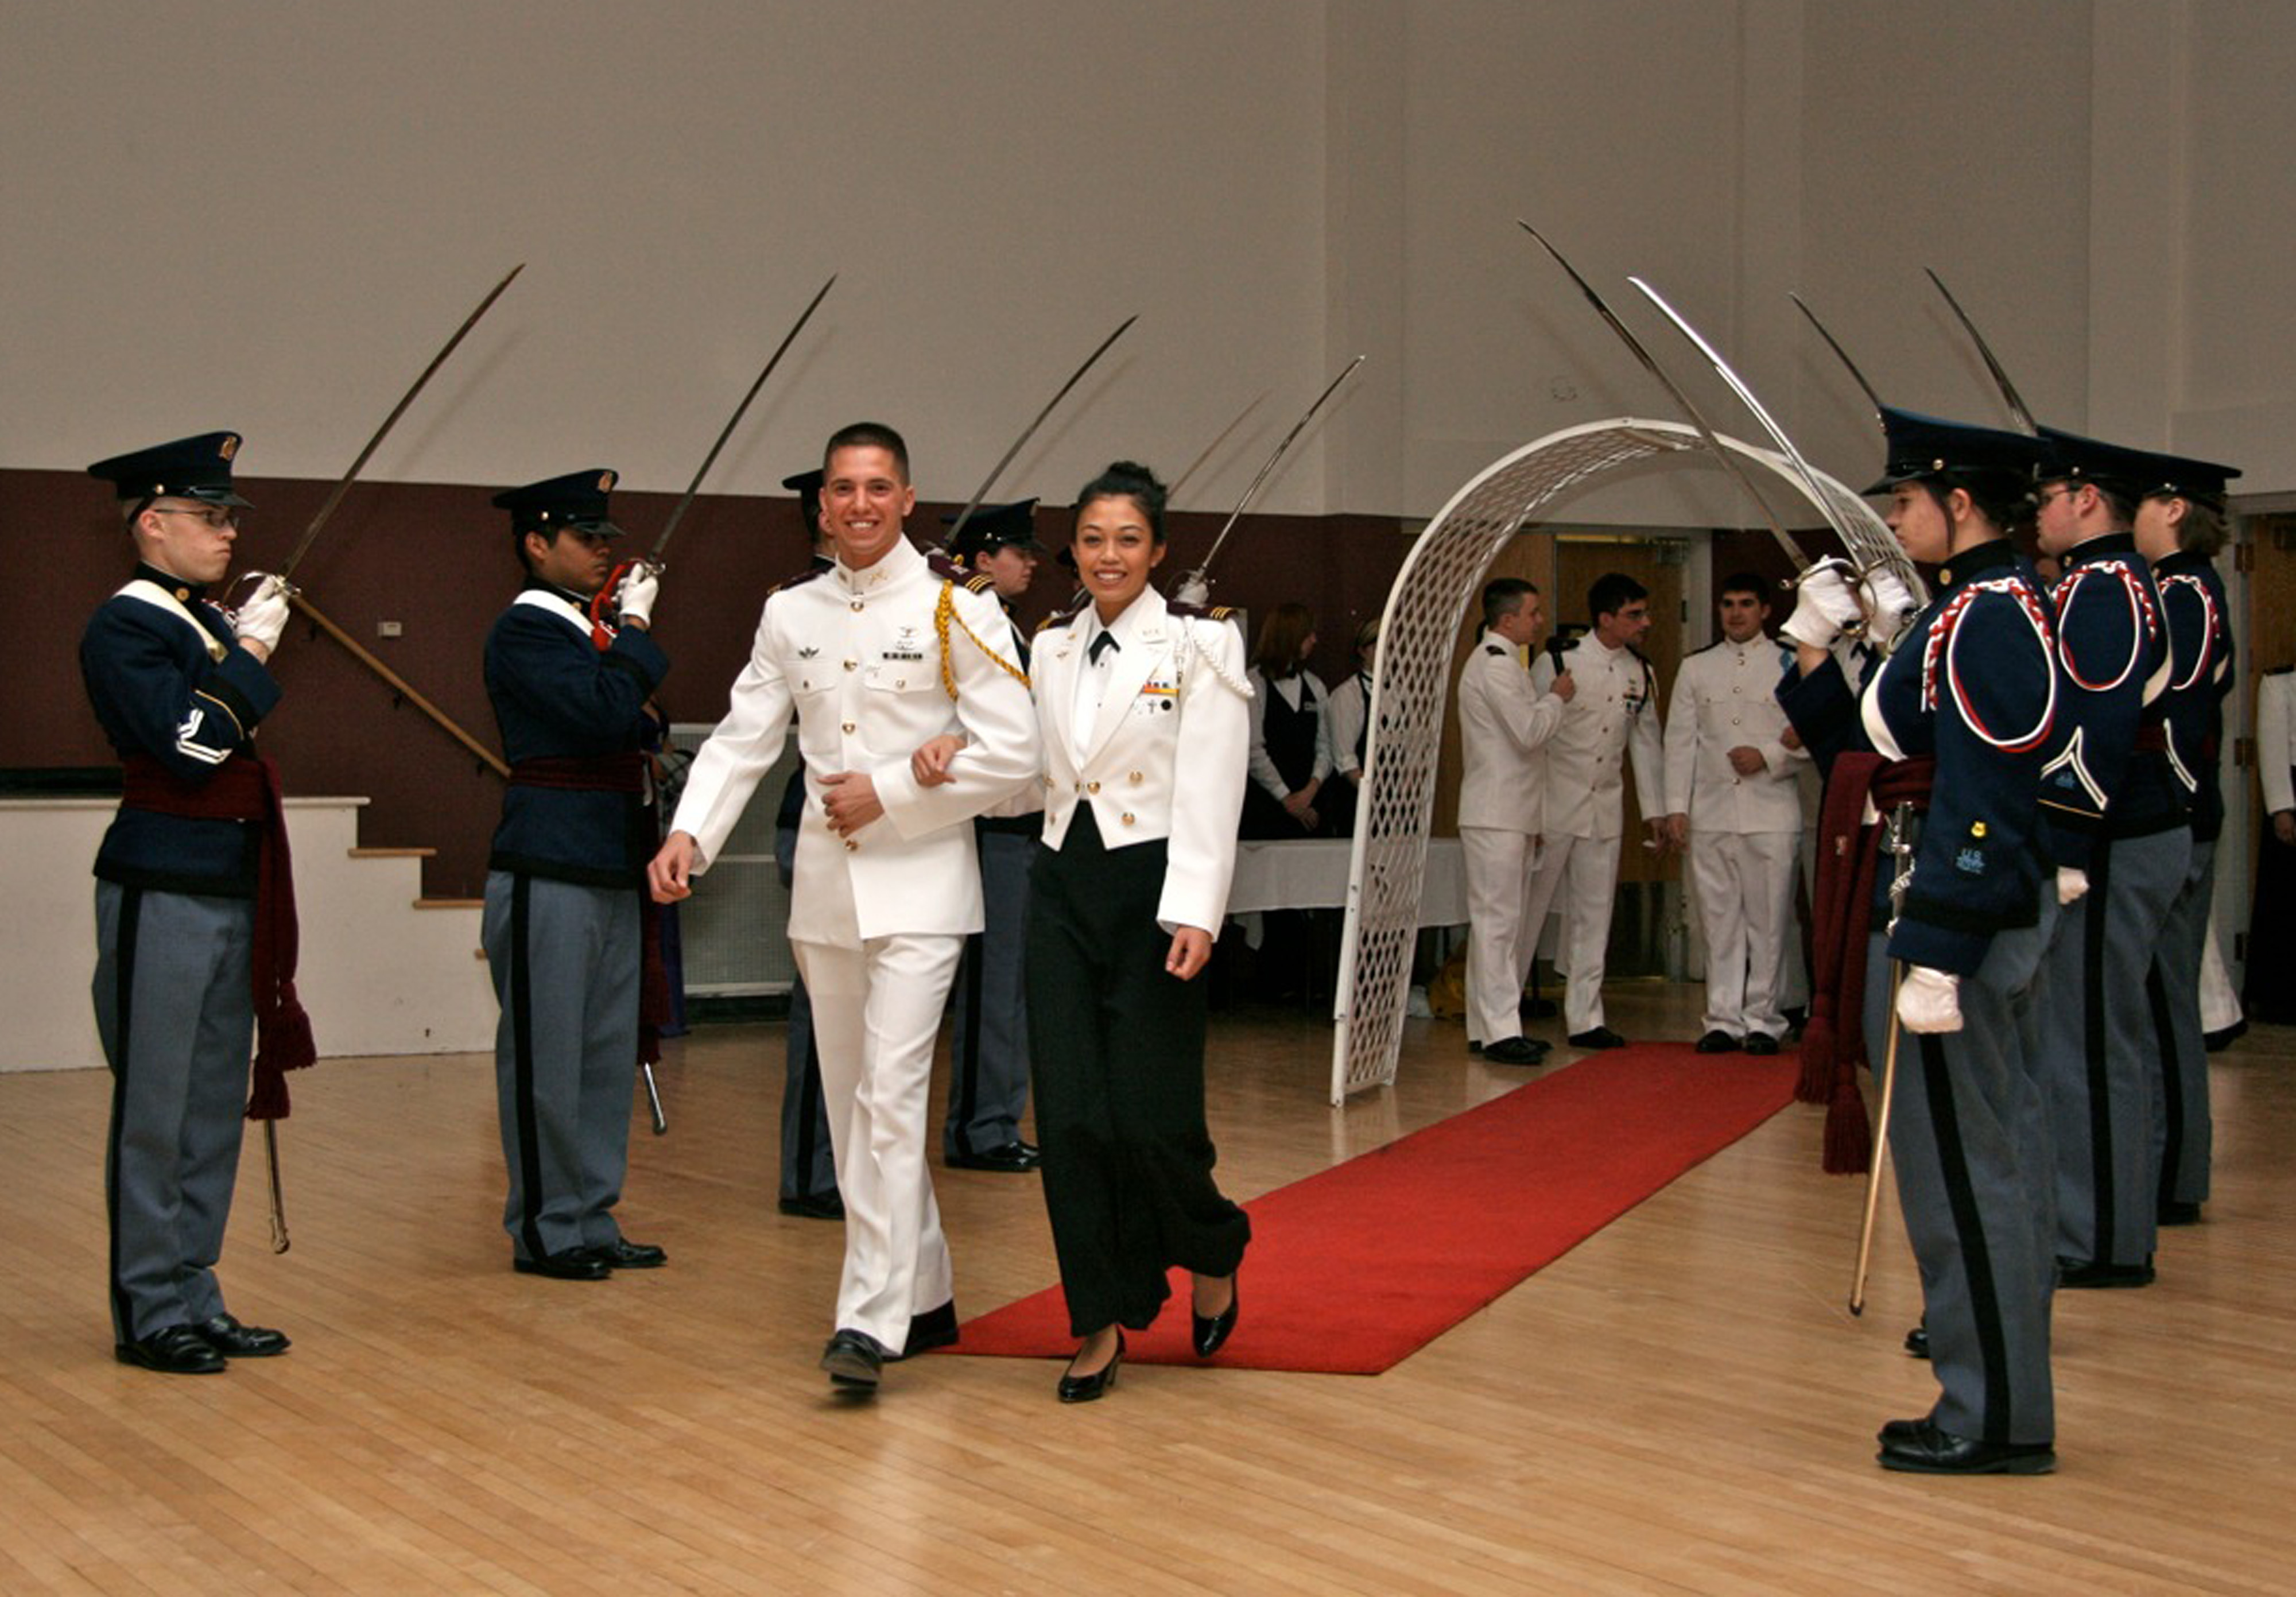 Two senior cadets being presented at the Virginia Tech Corps of Cadets Military Ball in 2010